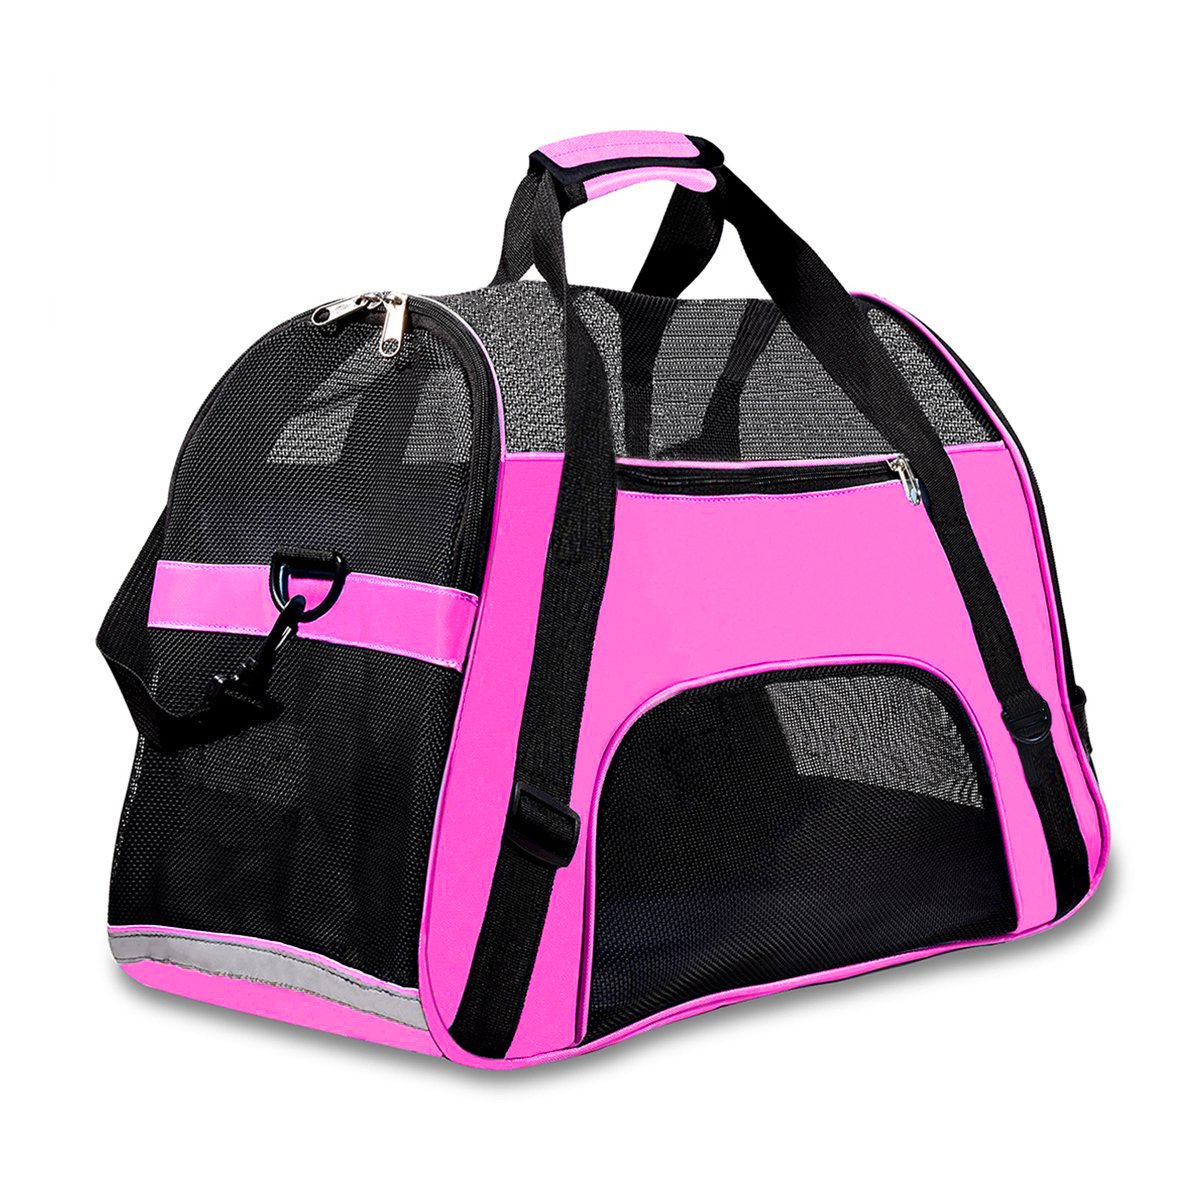 Airline Approved Pet Carrier Under Seat Soft Sided for Dogs Cats Small Puppies 17''L x 8''W x 10''H,Airline Travel Handbag Shoulder Bag,Middle,Pink